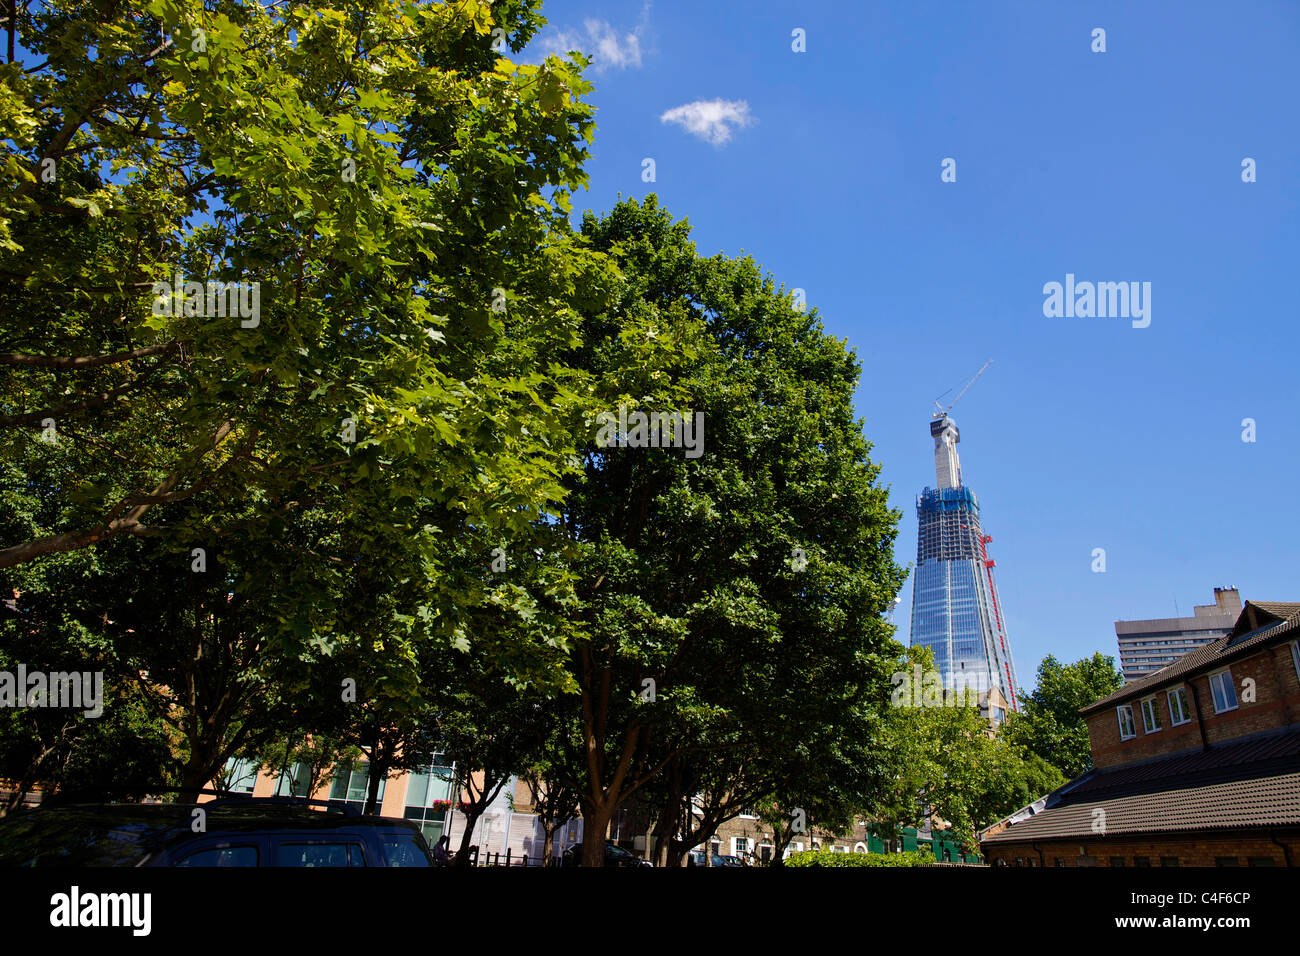 The Shard skyscraper under construction looming over the trees in Southwark - Stock Image